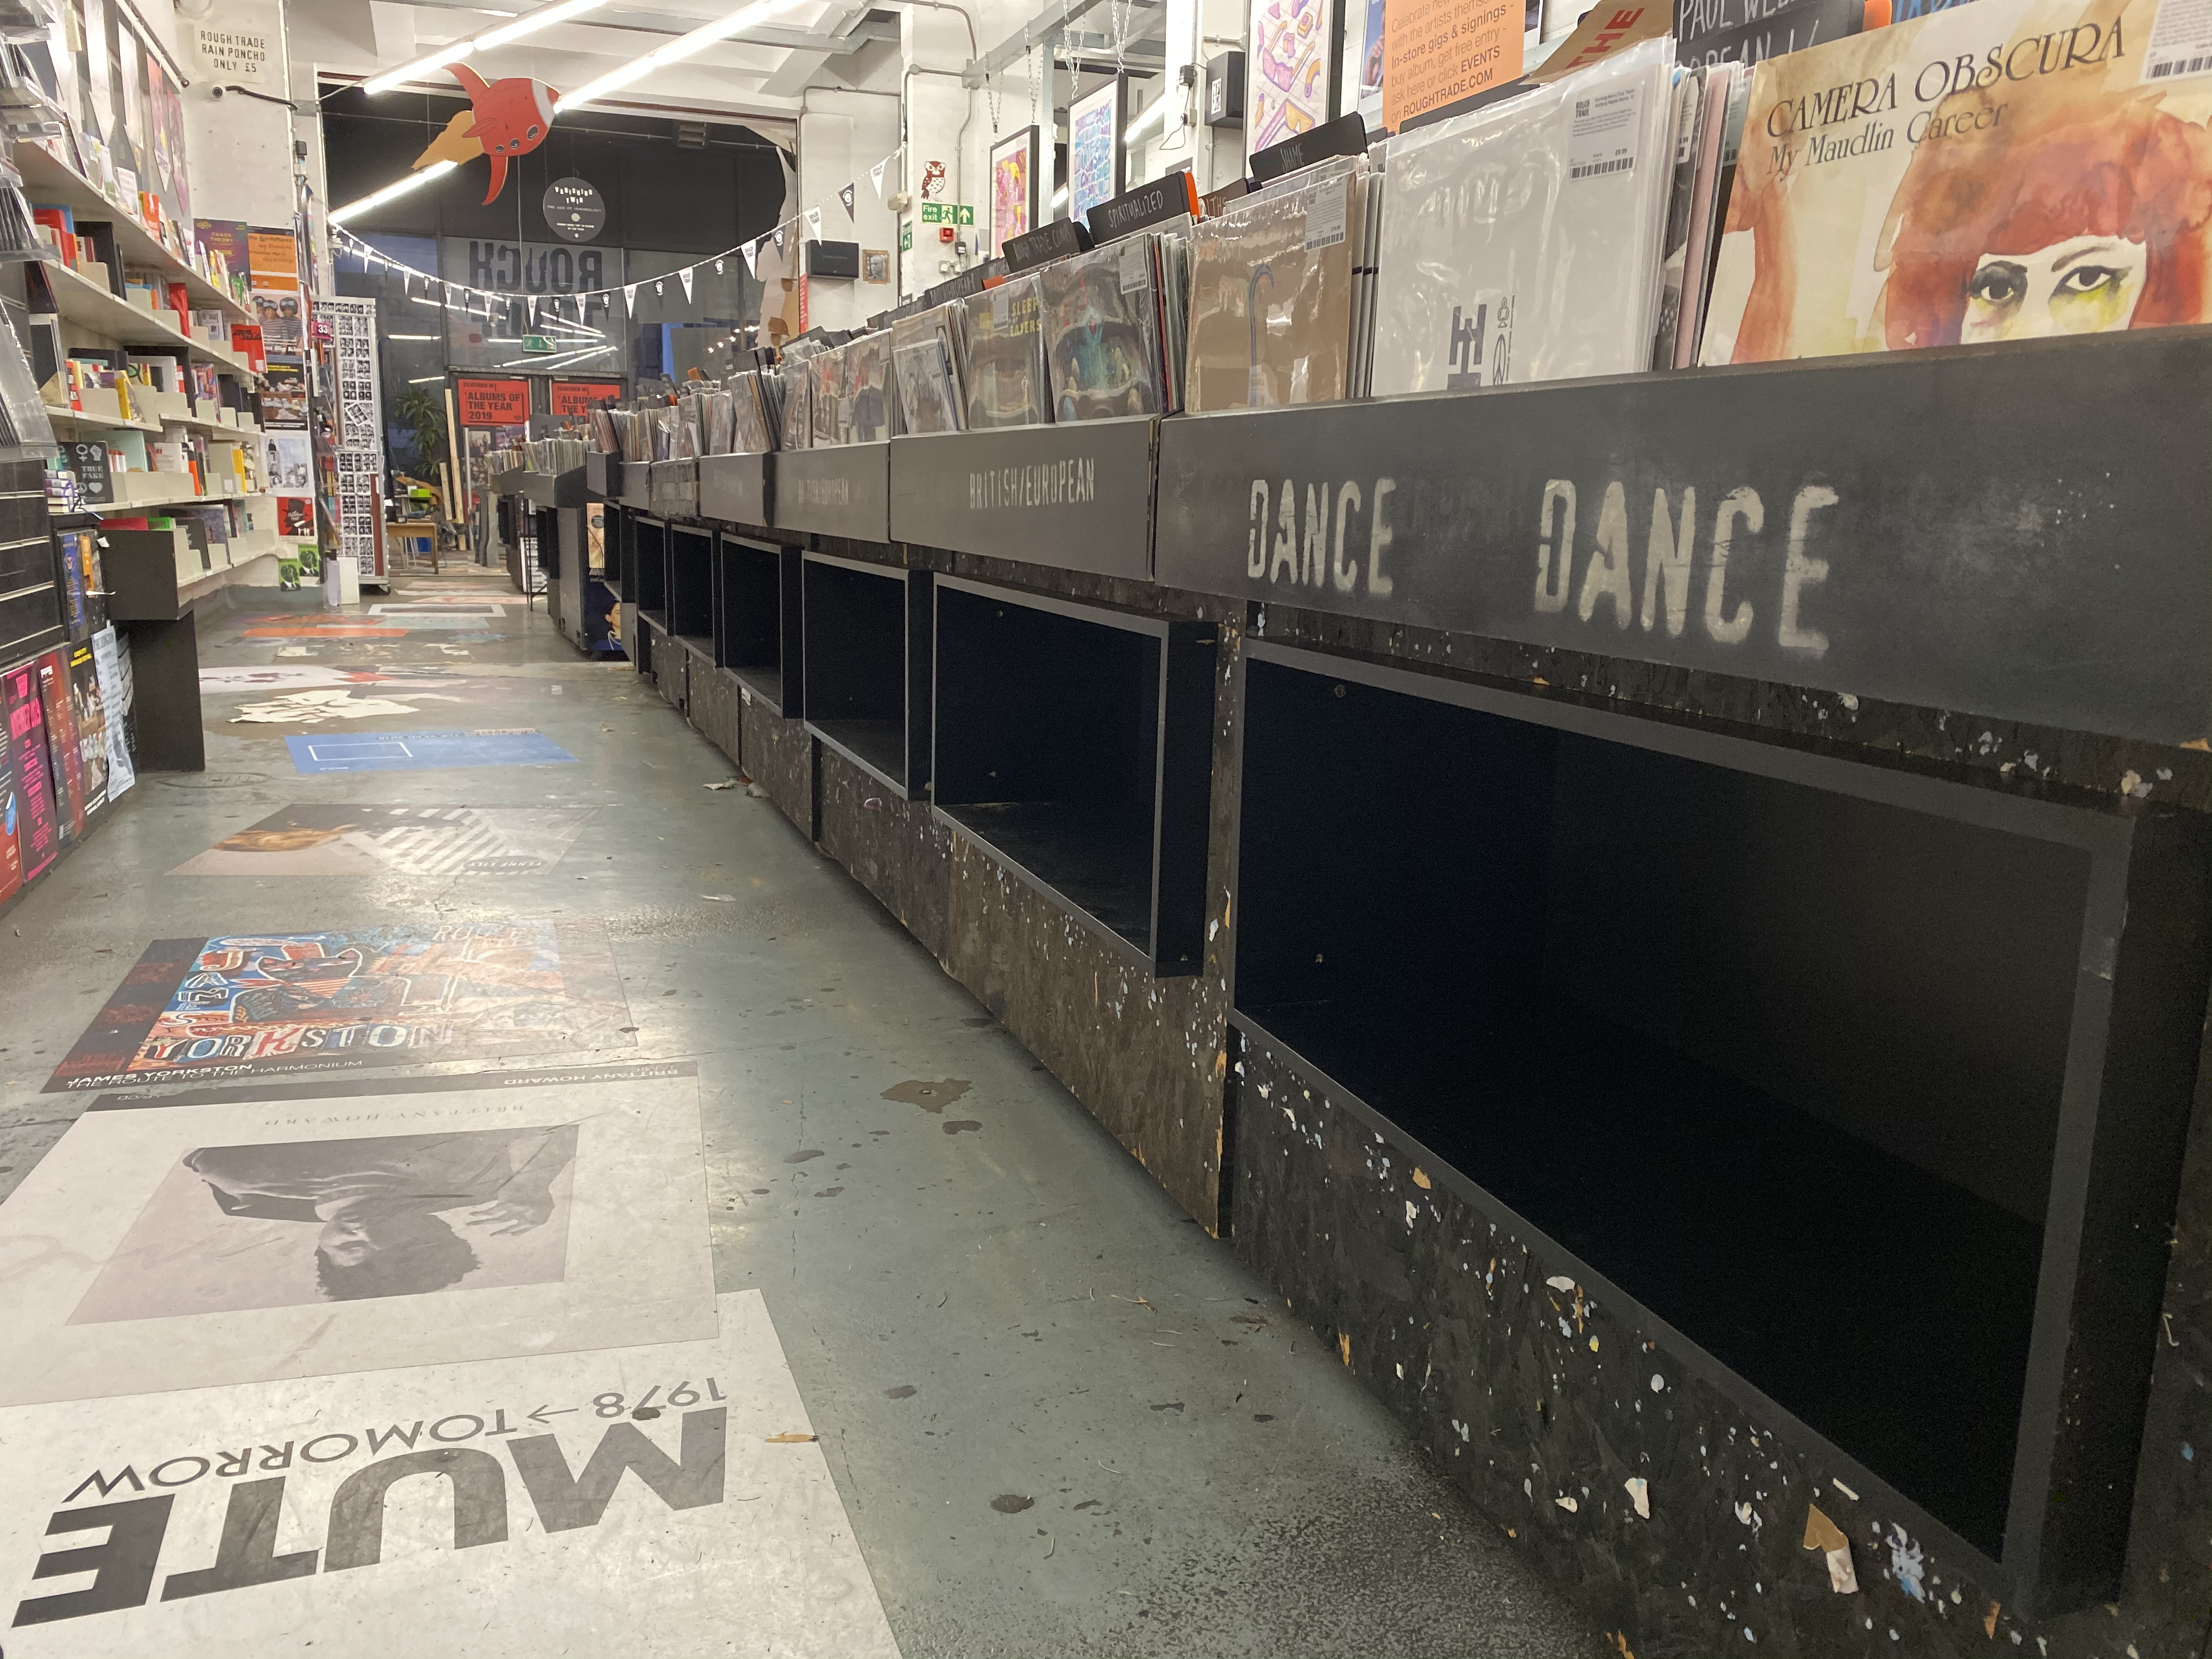 Rough Trade East Vinyl Rack